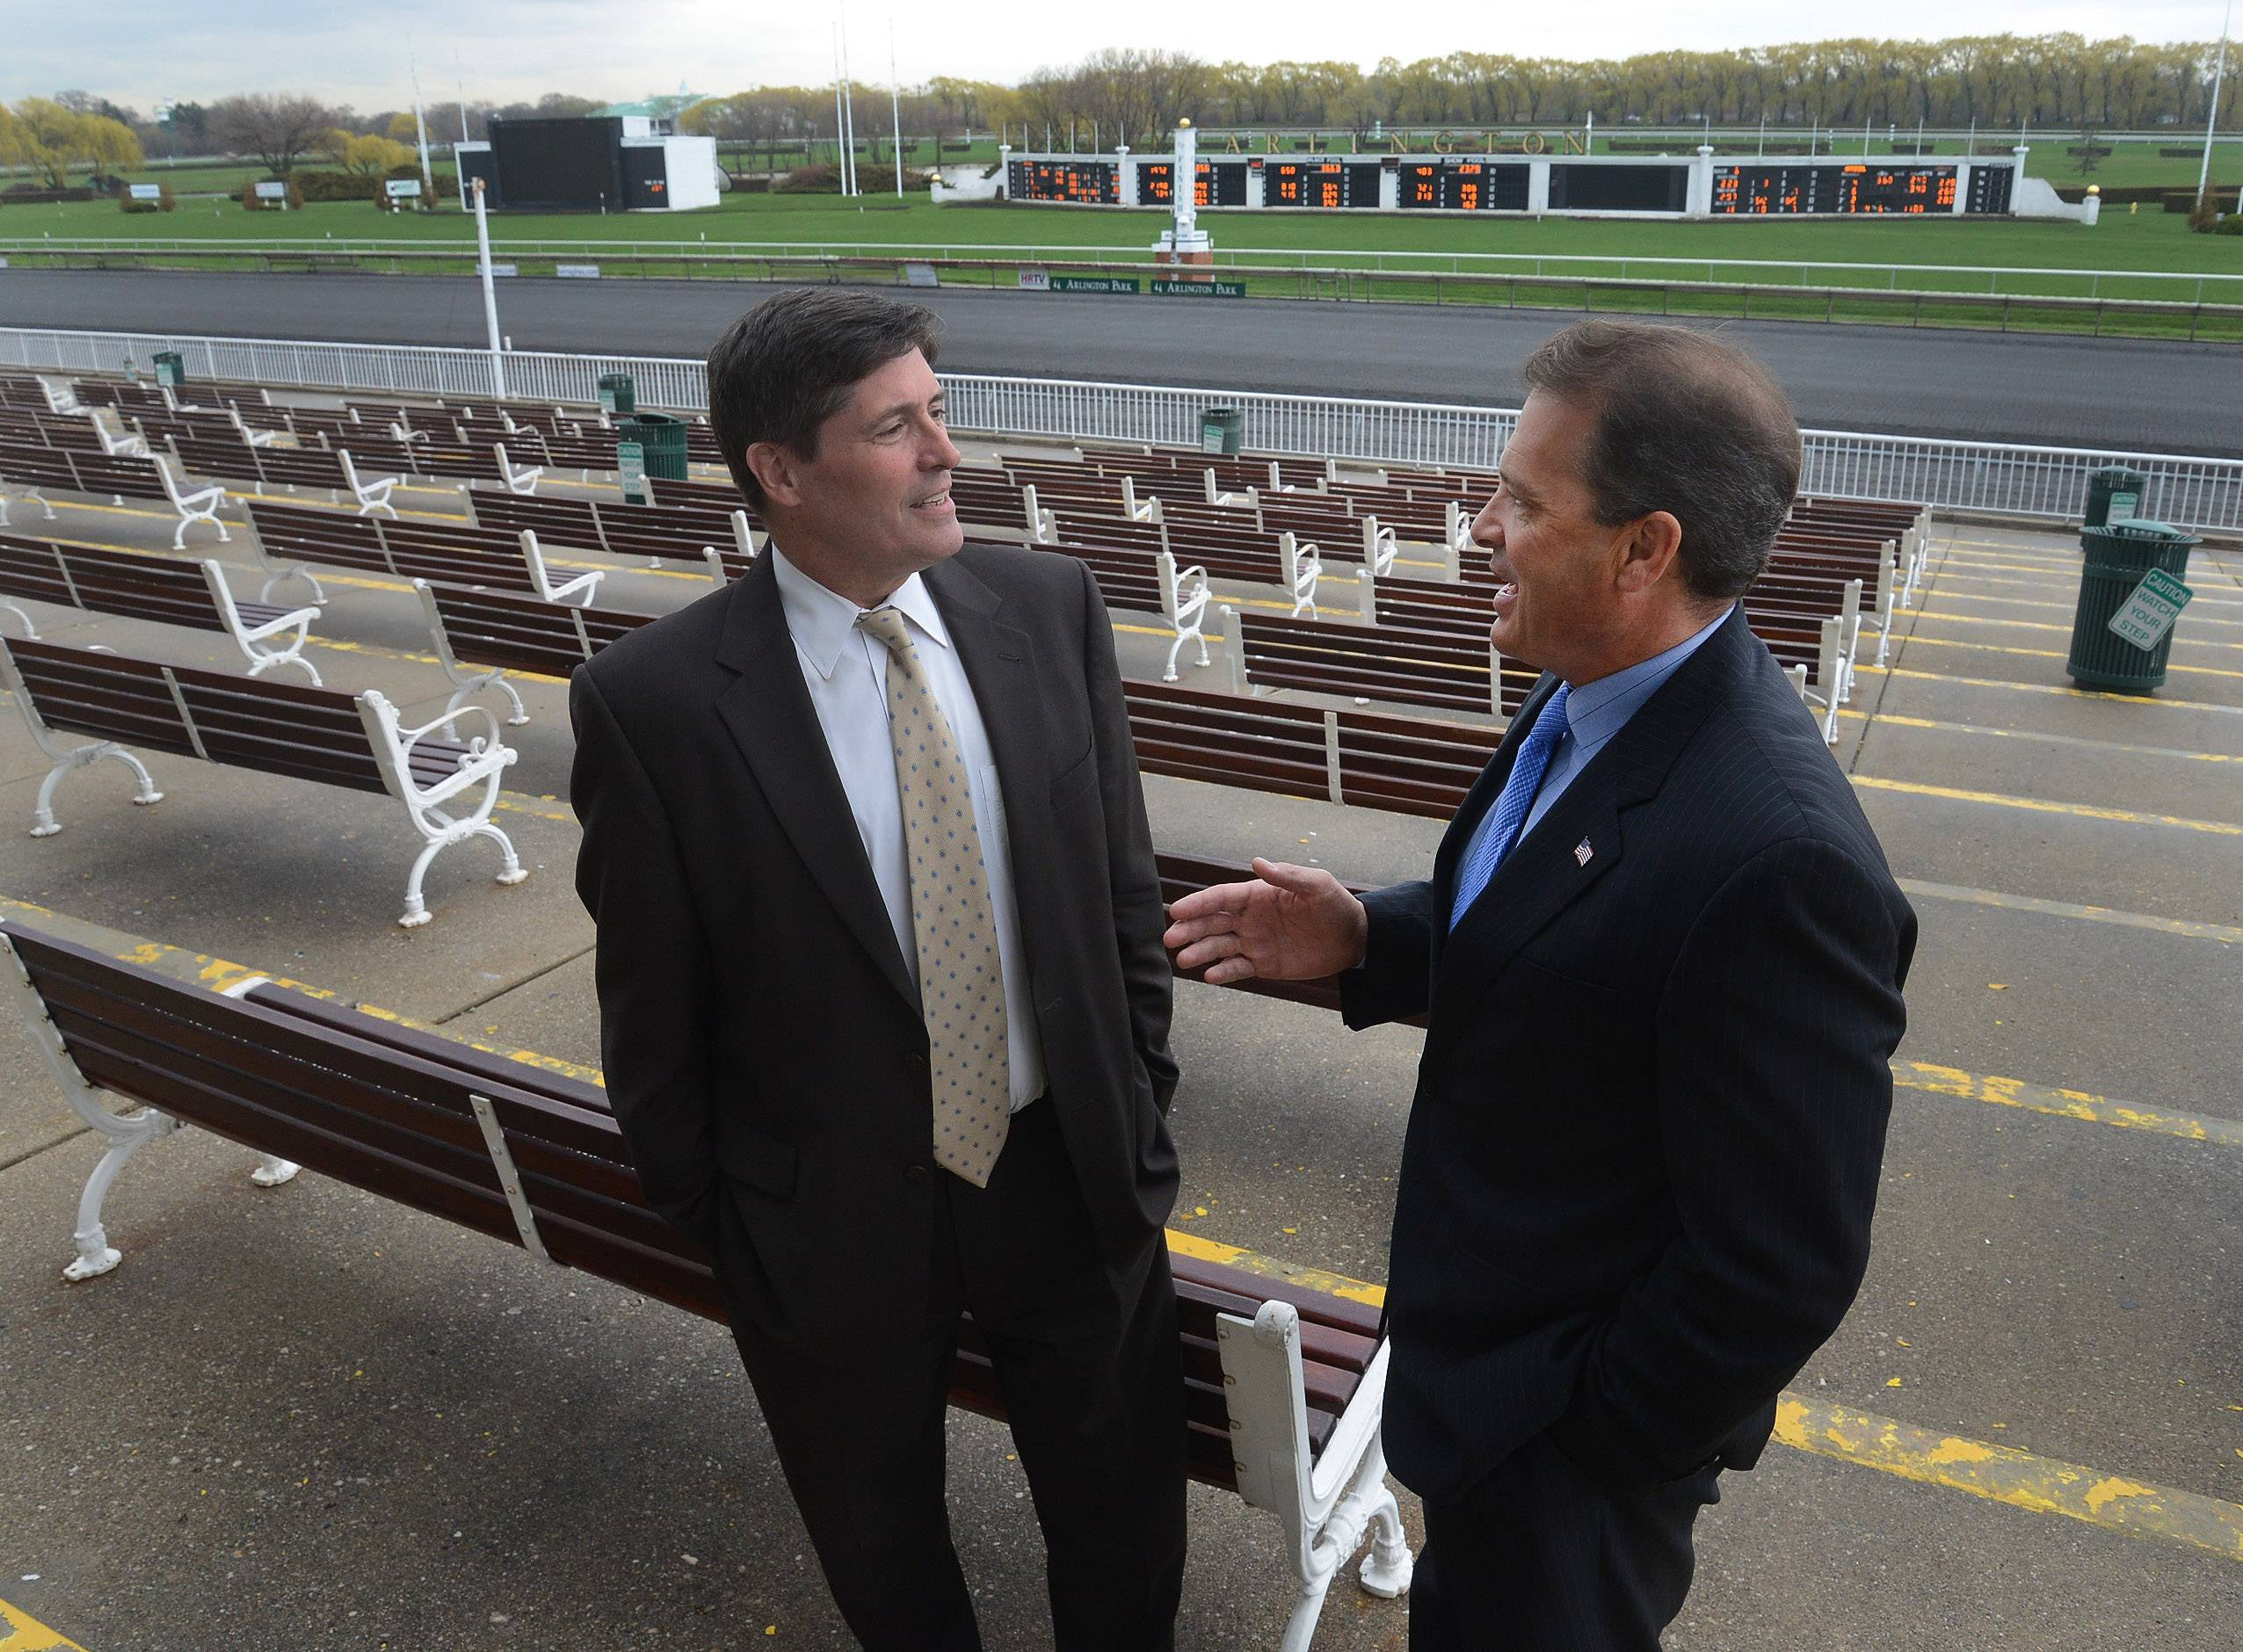 Racing secretary Chris Polzin, left, and track president Tony Petrillo expect to have more than 2,000 horses stabled at Arlington International this season, which would be about 300 more than last year. Arlington opens its season today.